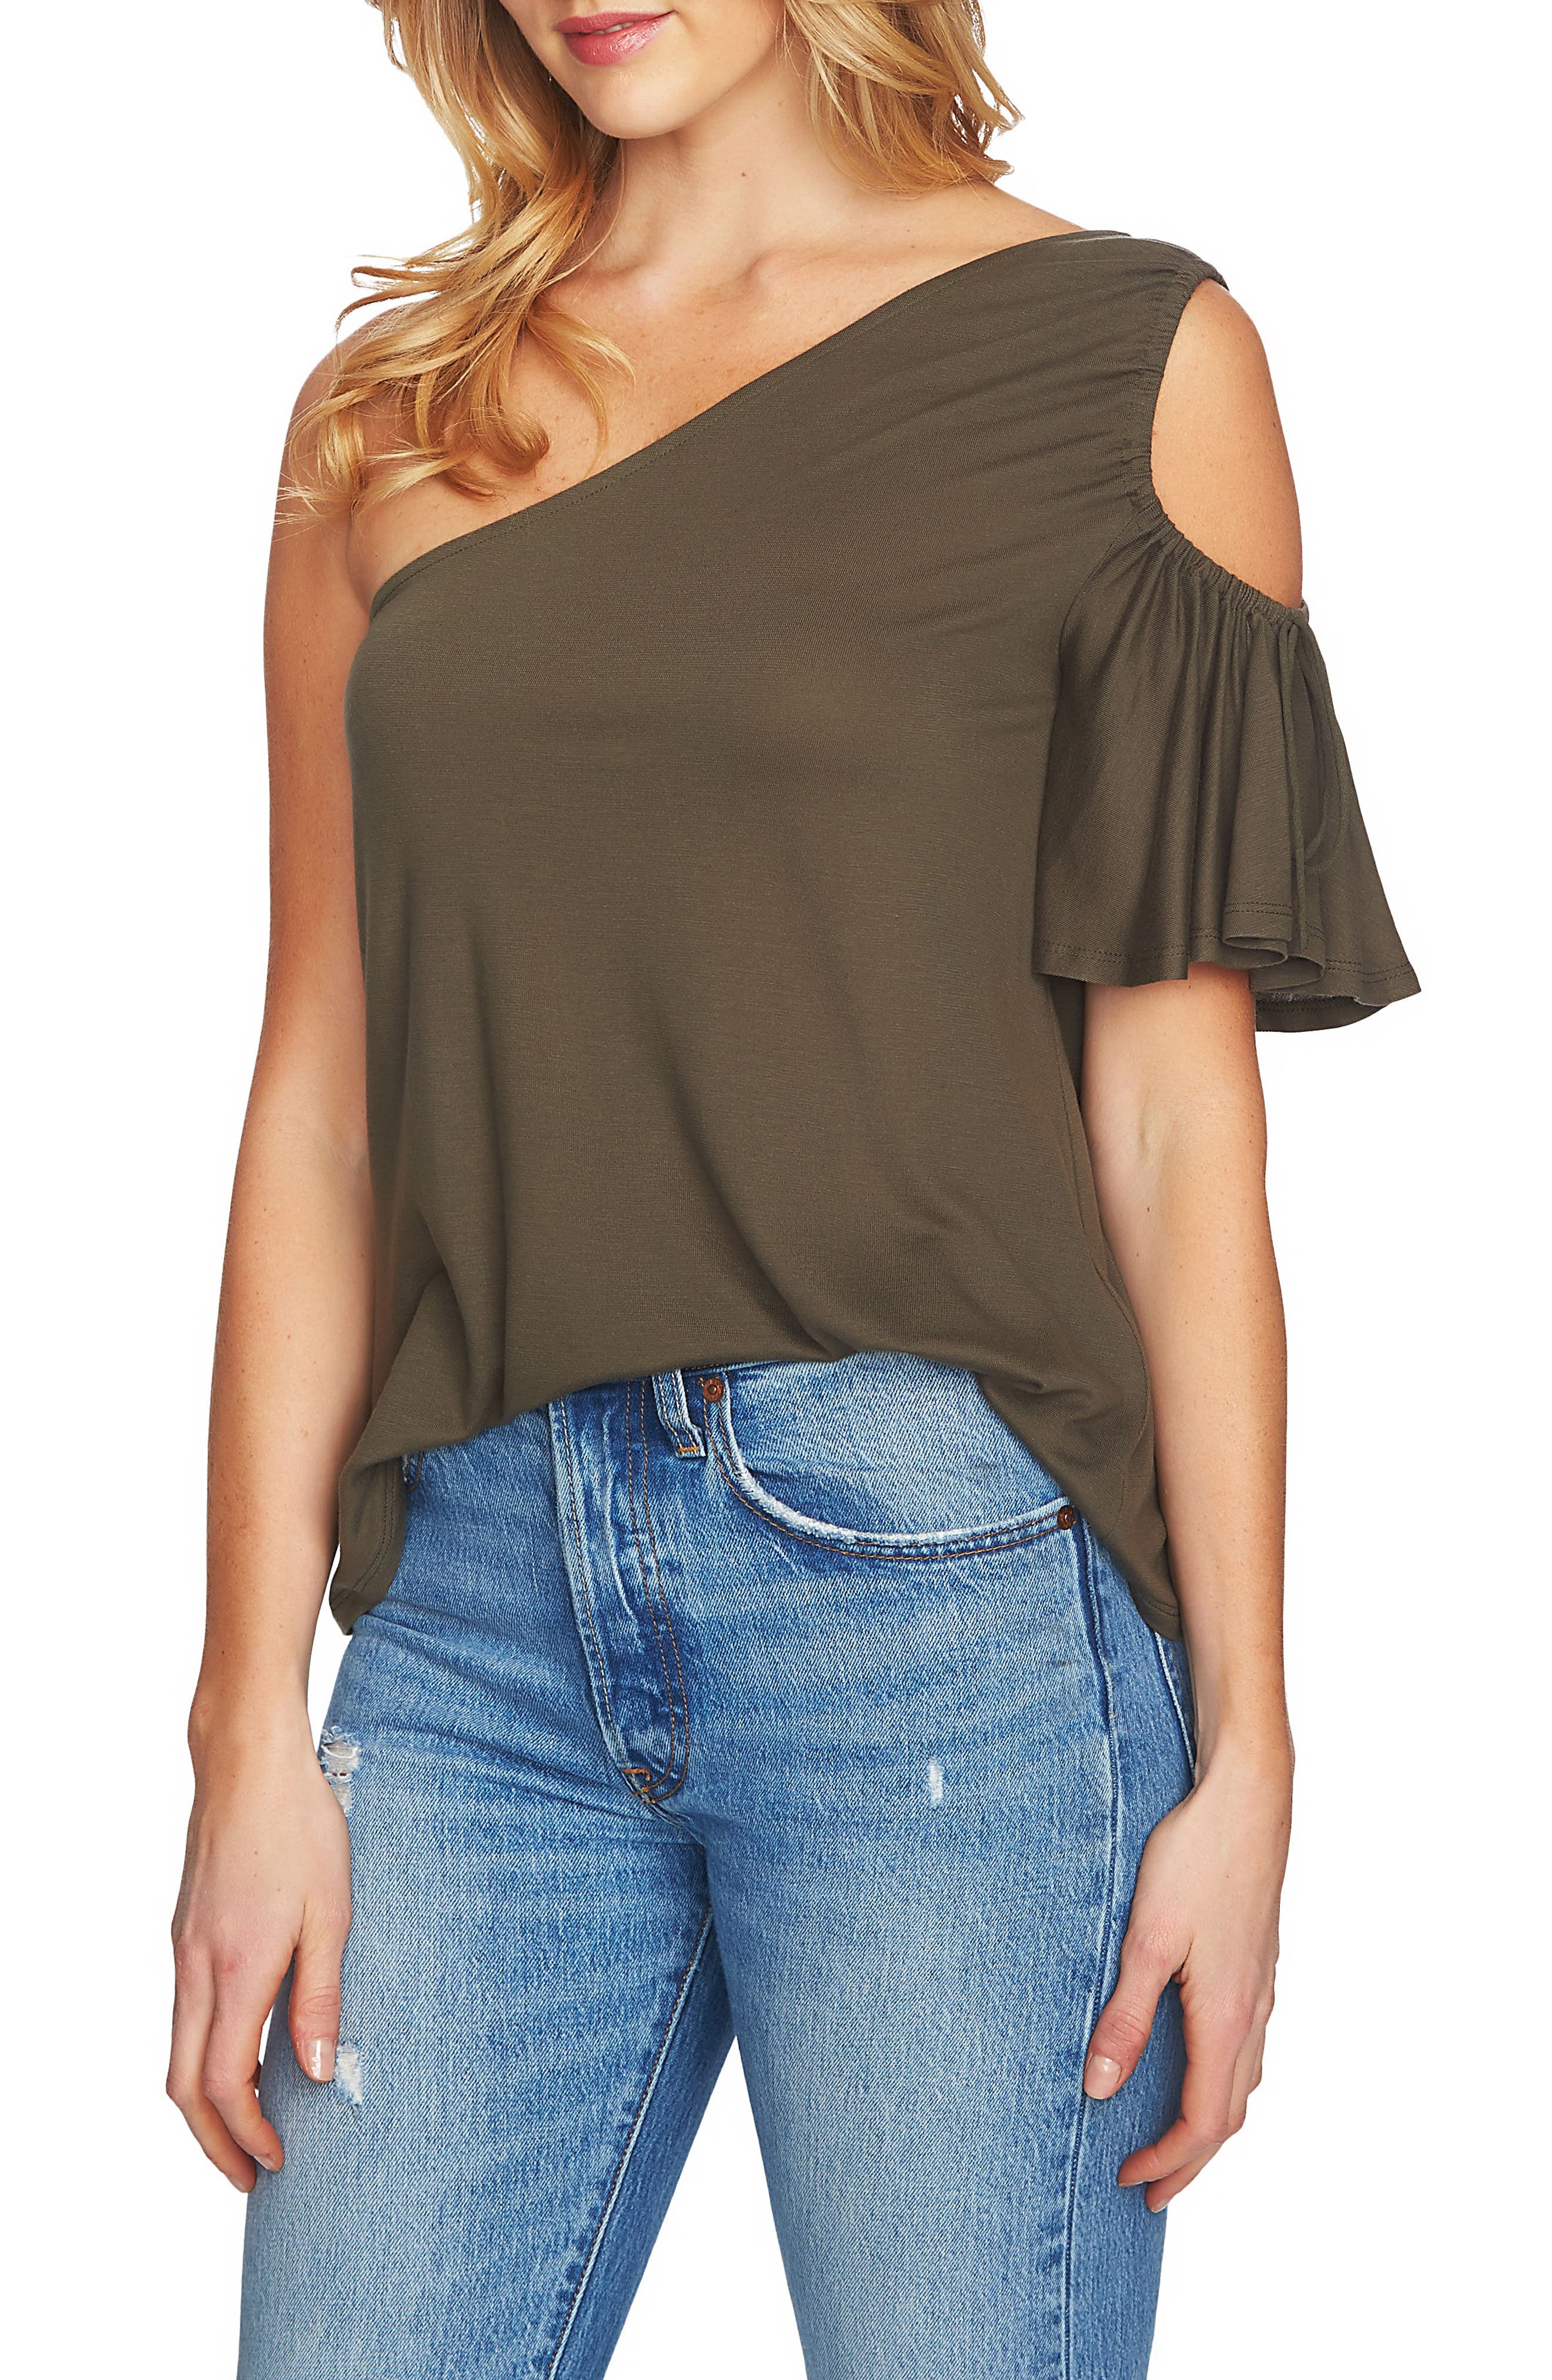 Cutout One-Shoulder Top,                         Main,                         color, 311-Olive Tree